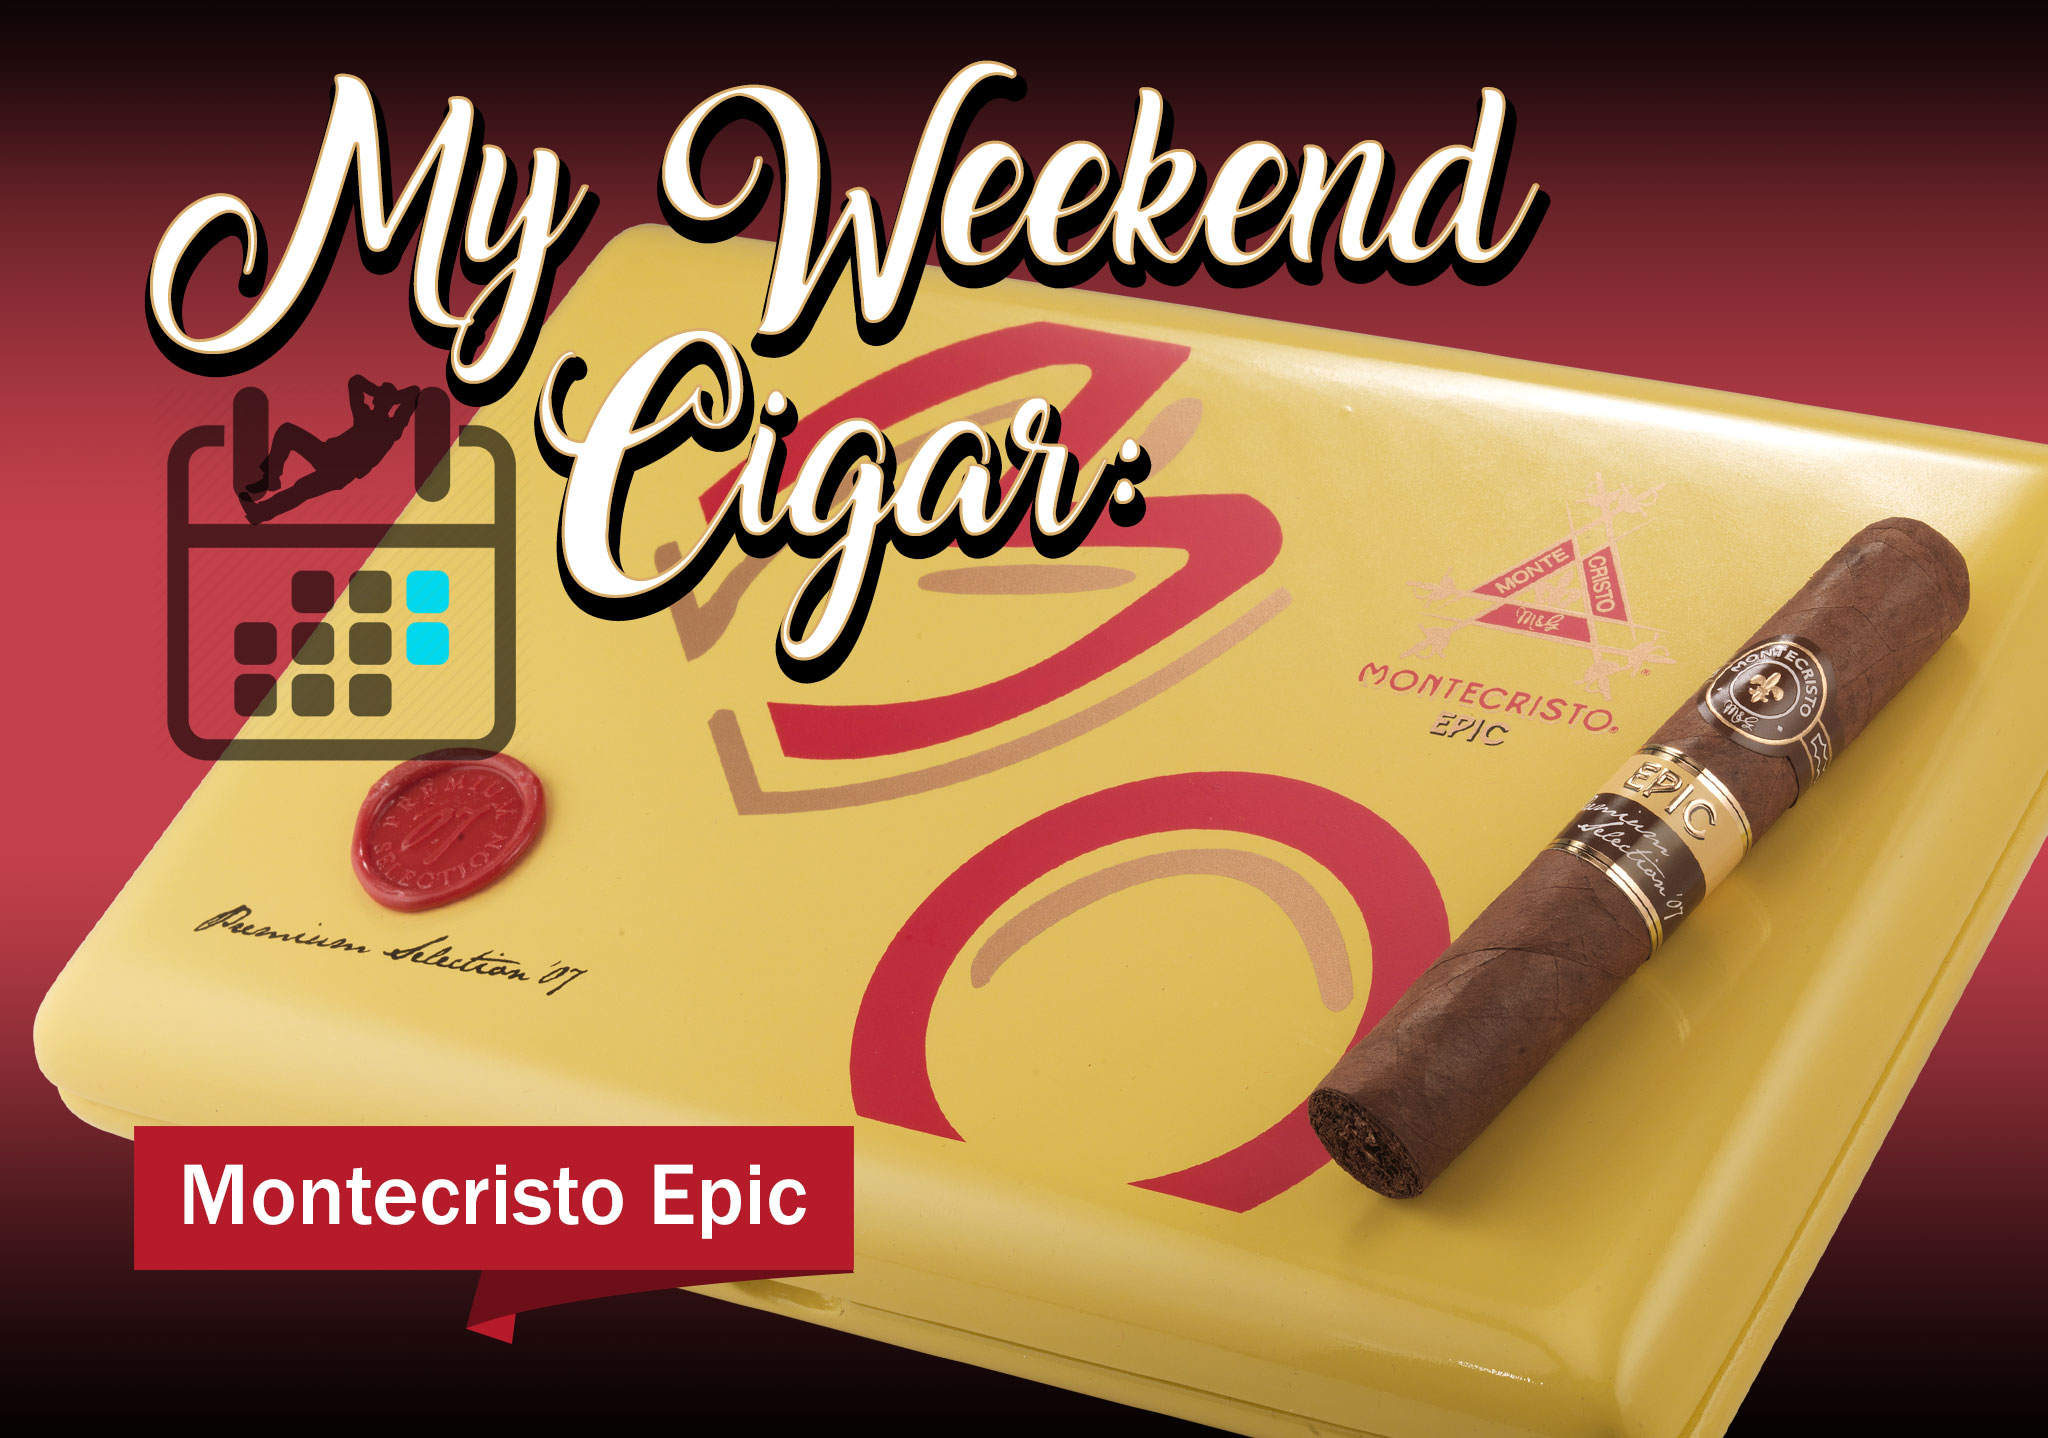 My Weekend Cigar – Dec. 4, 2017: Montecristo Epic